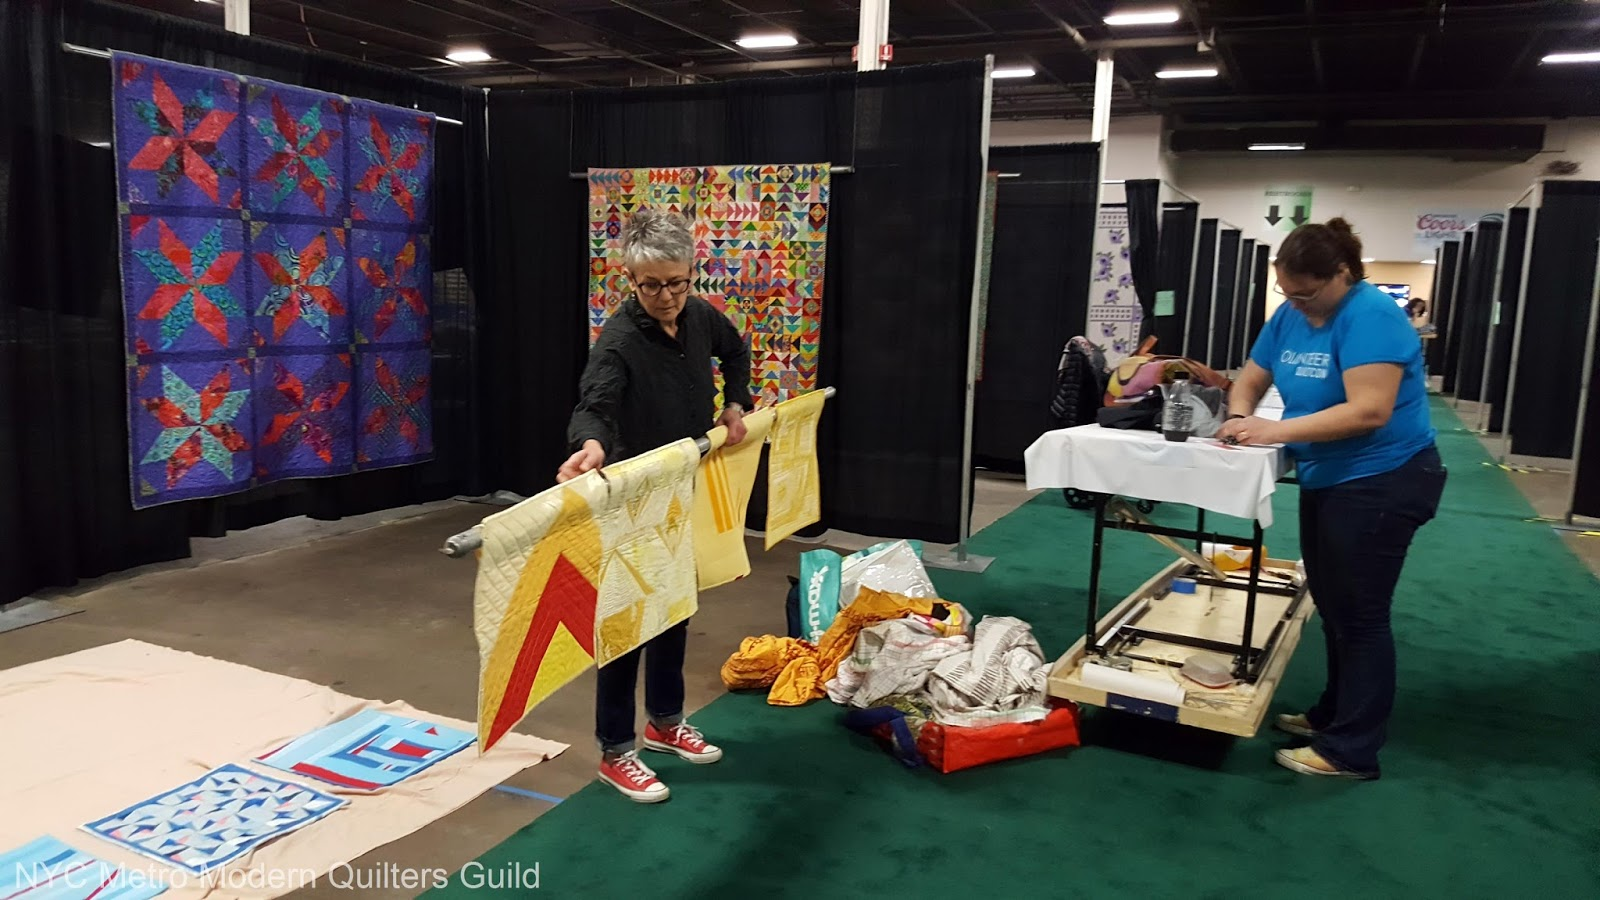 Nyc metro modern quilters guild the quilt sewing fest - Garden state exhibit center somerset nj ...